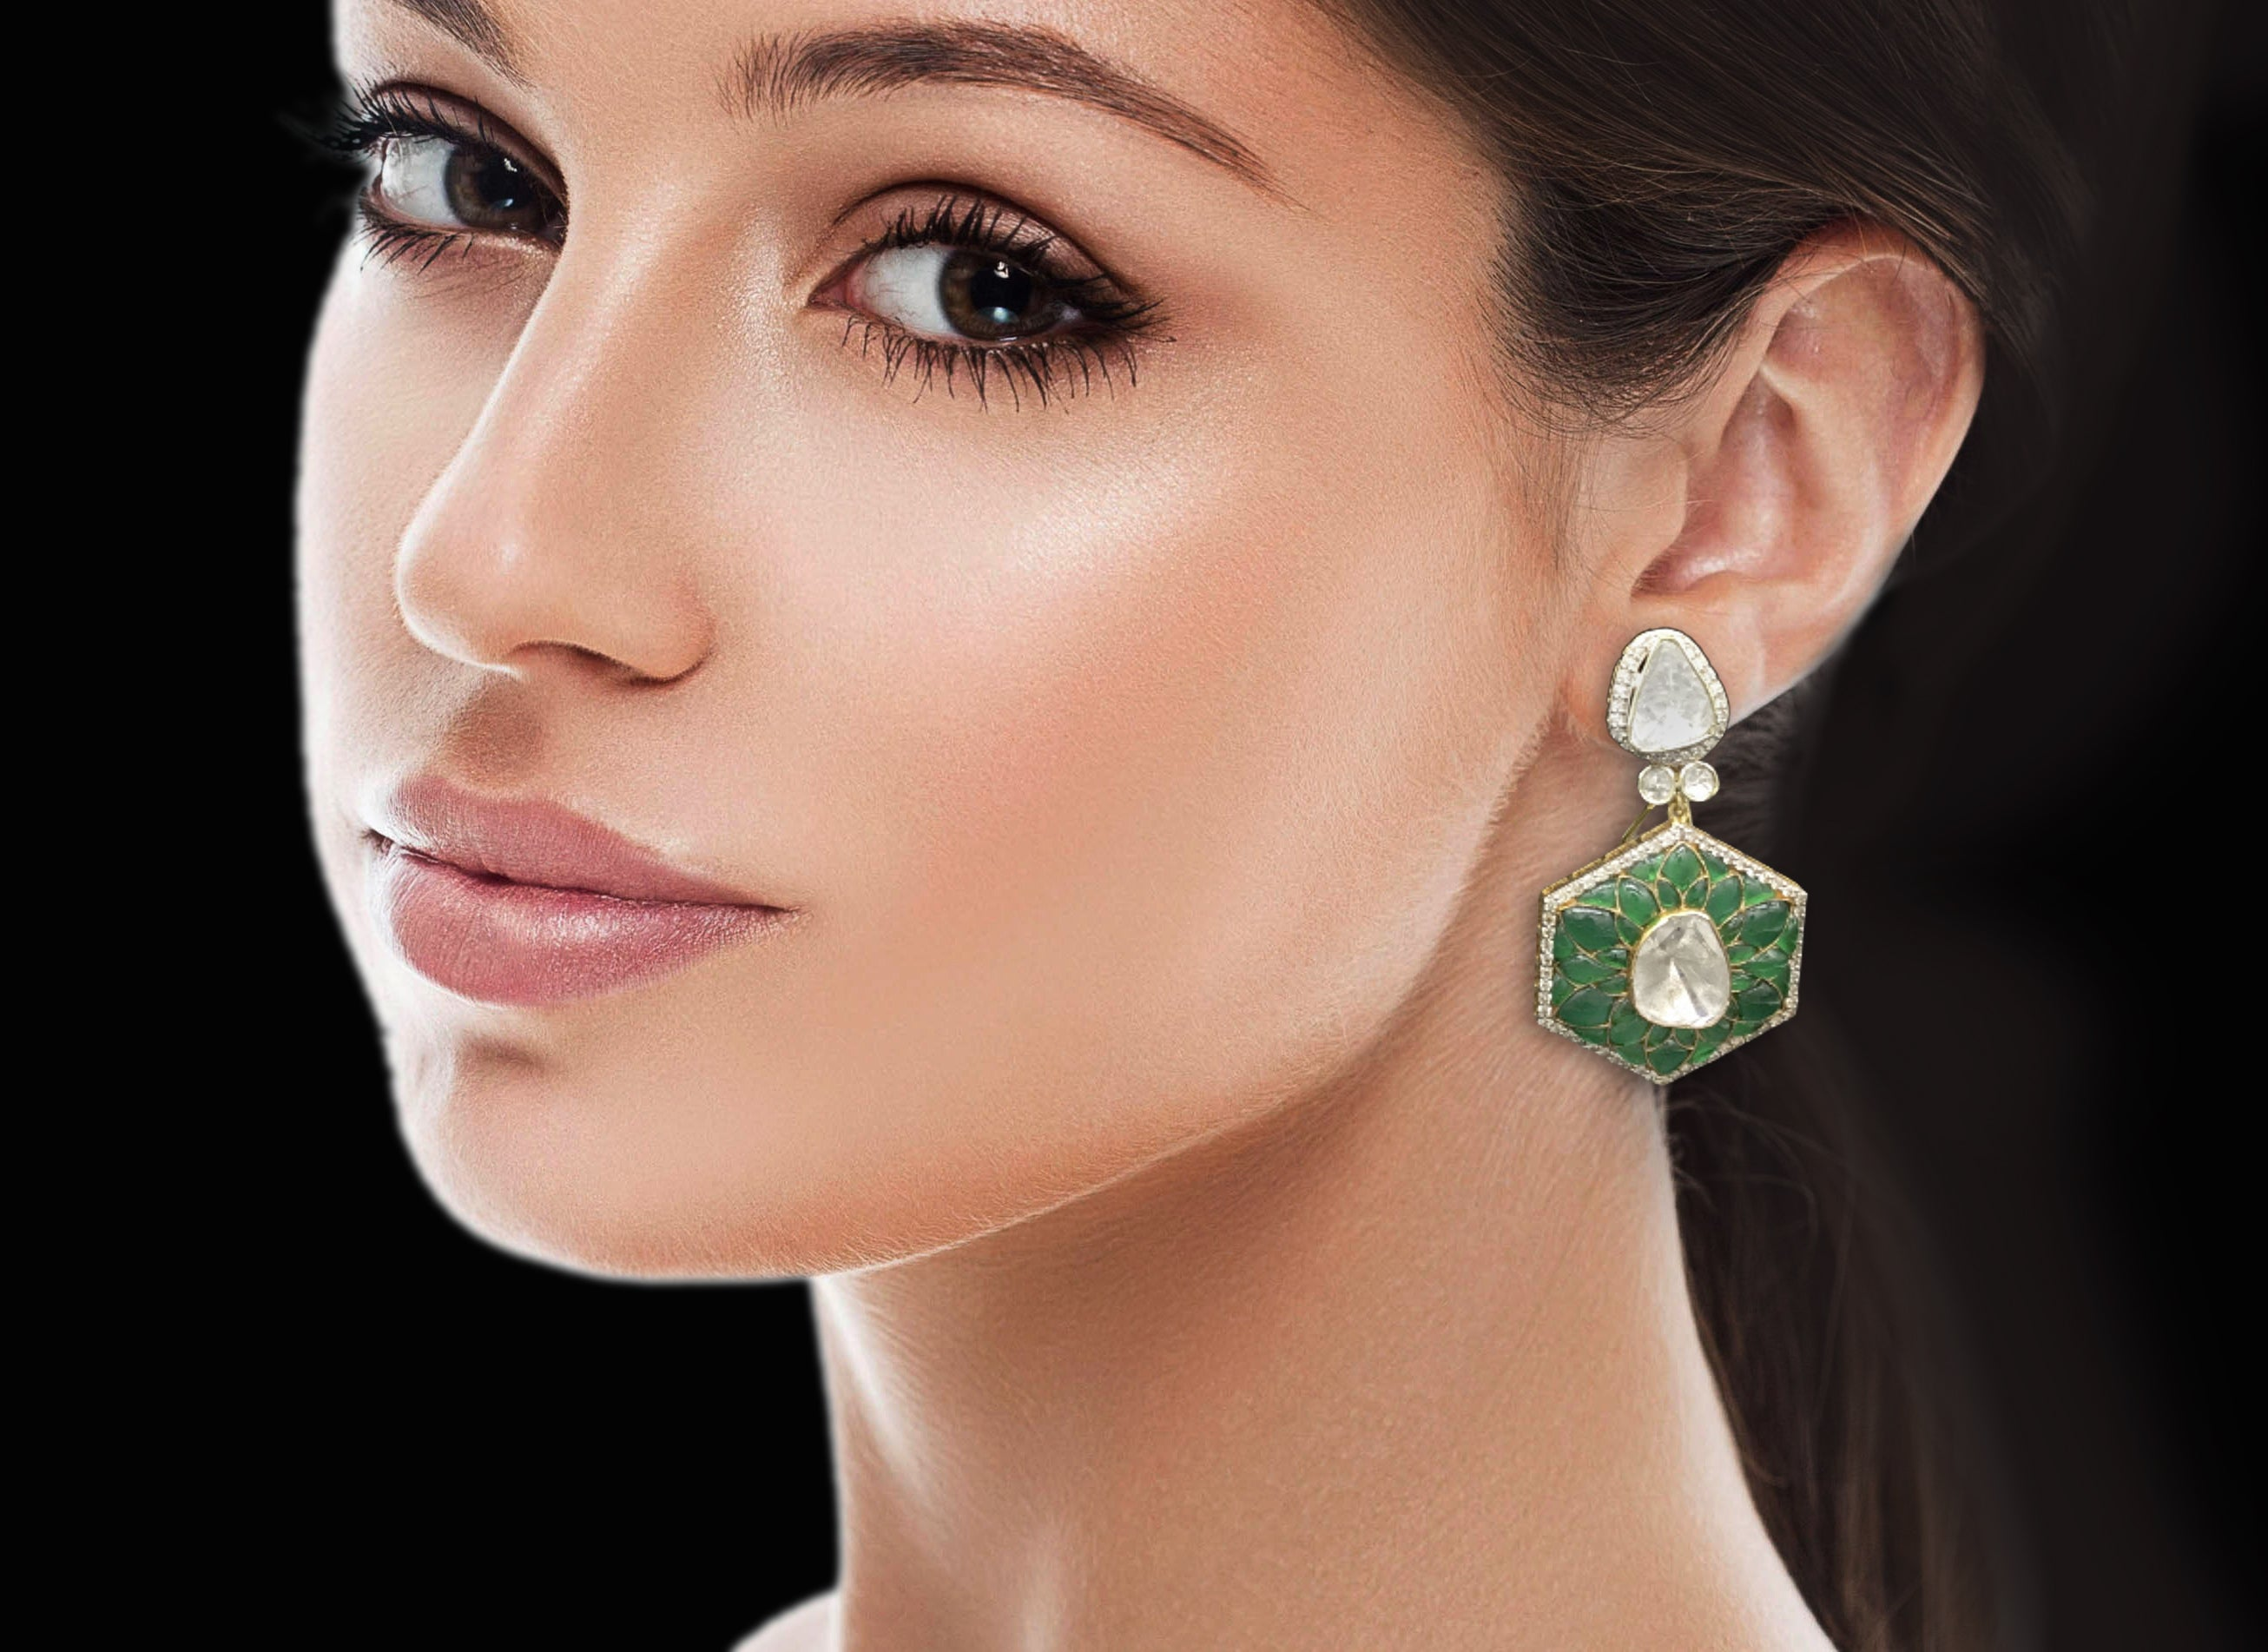 14k Gold and Diamond Polki Open Setting Long Earring Pair with emerald-grade green motifs